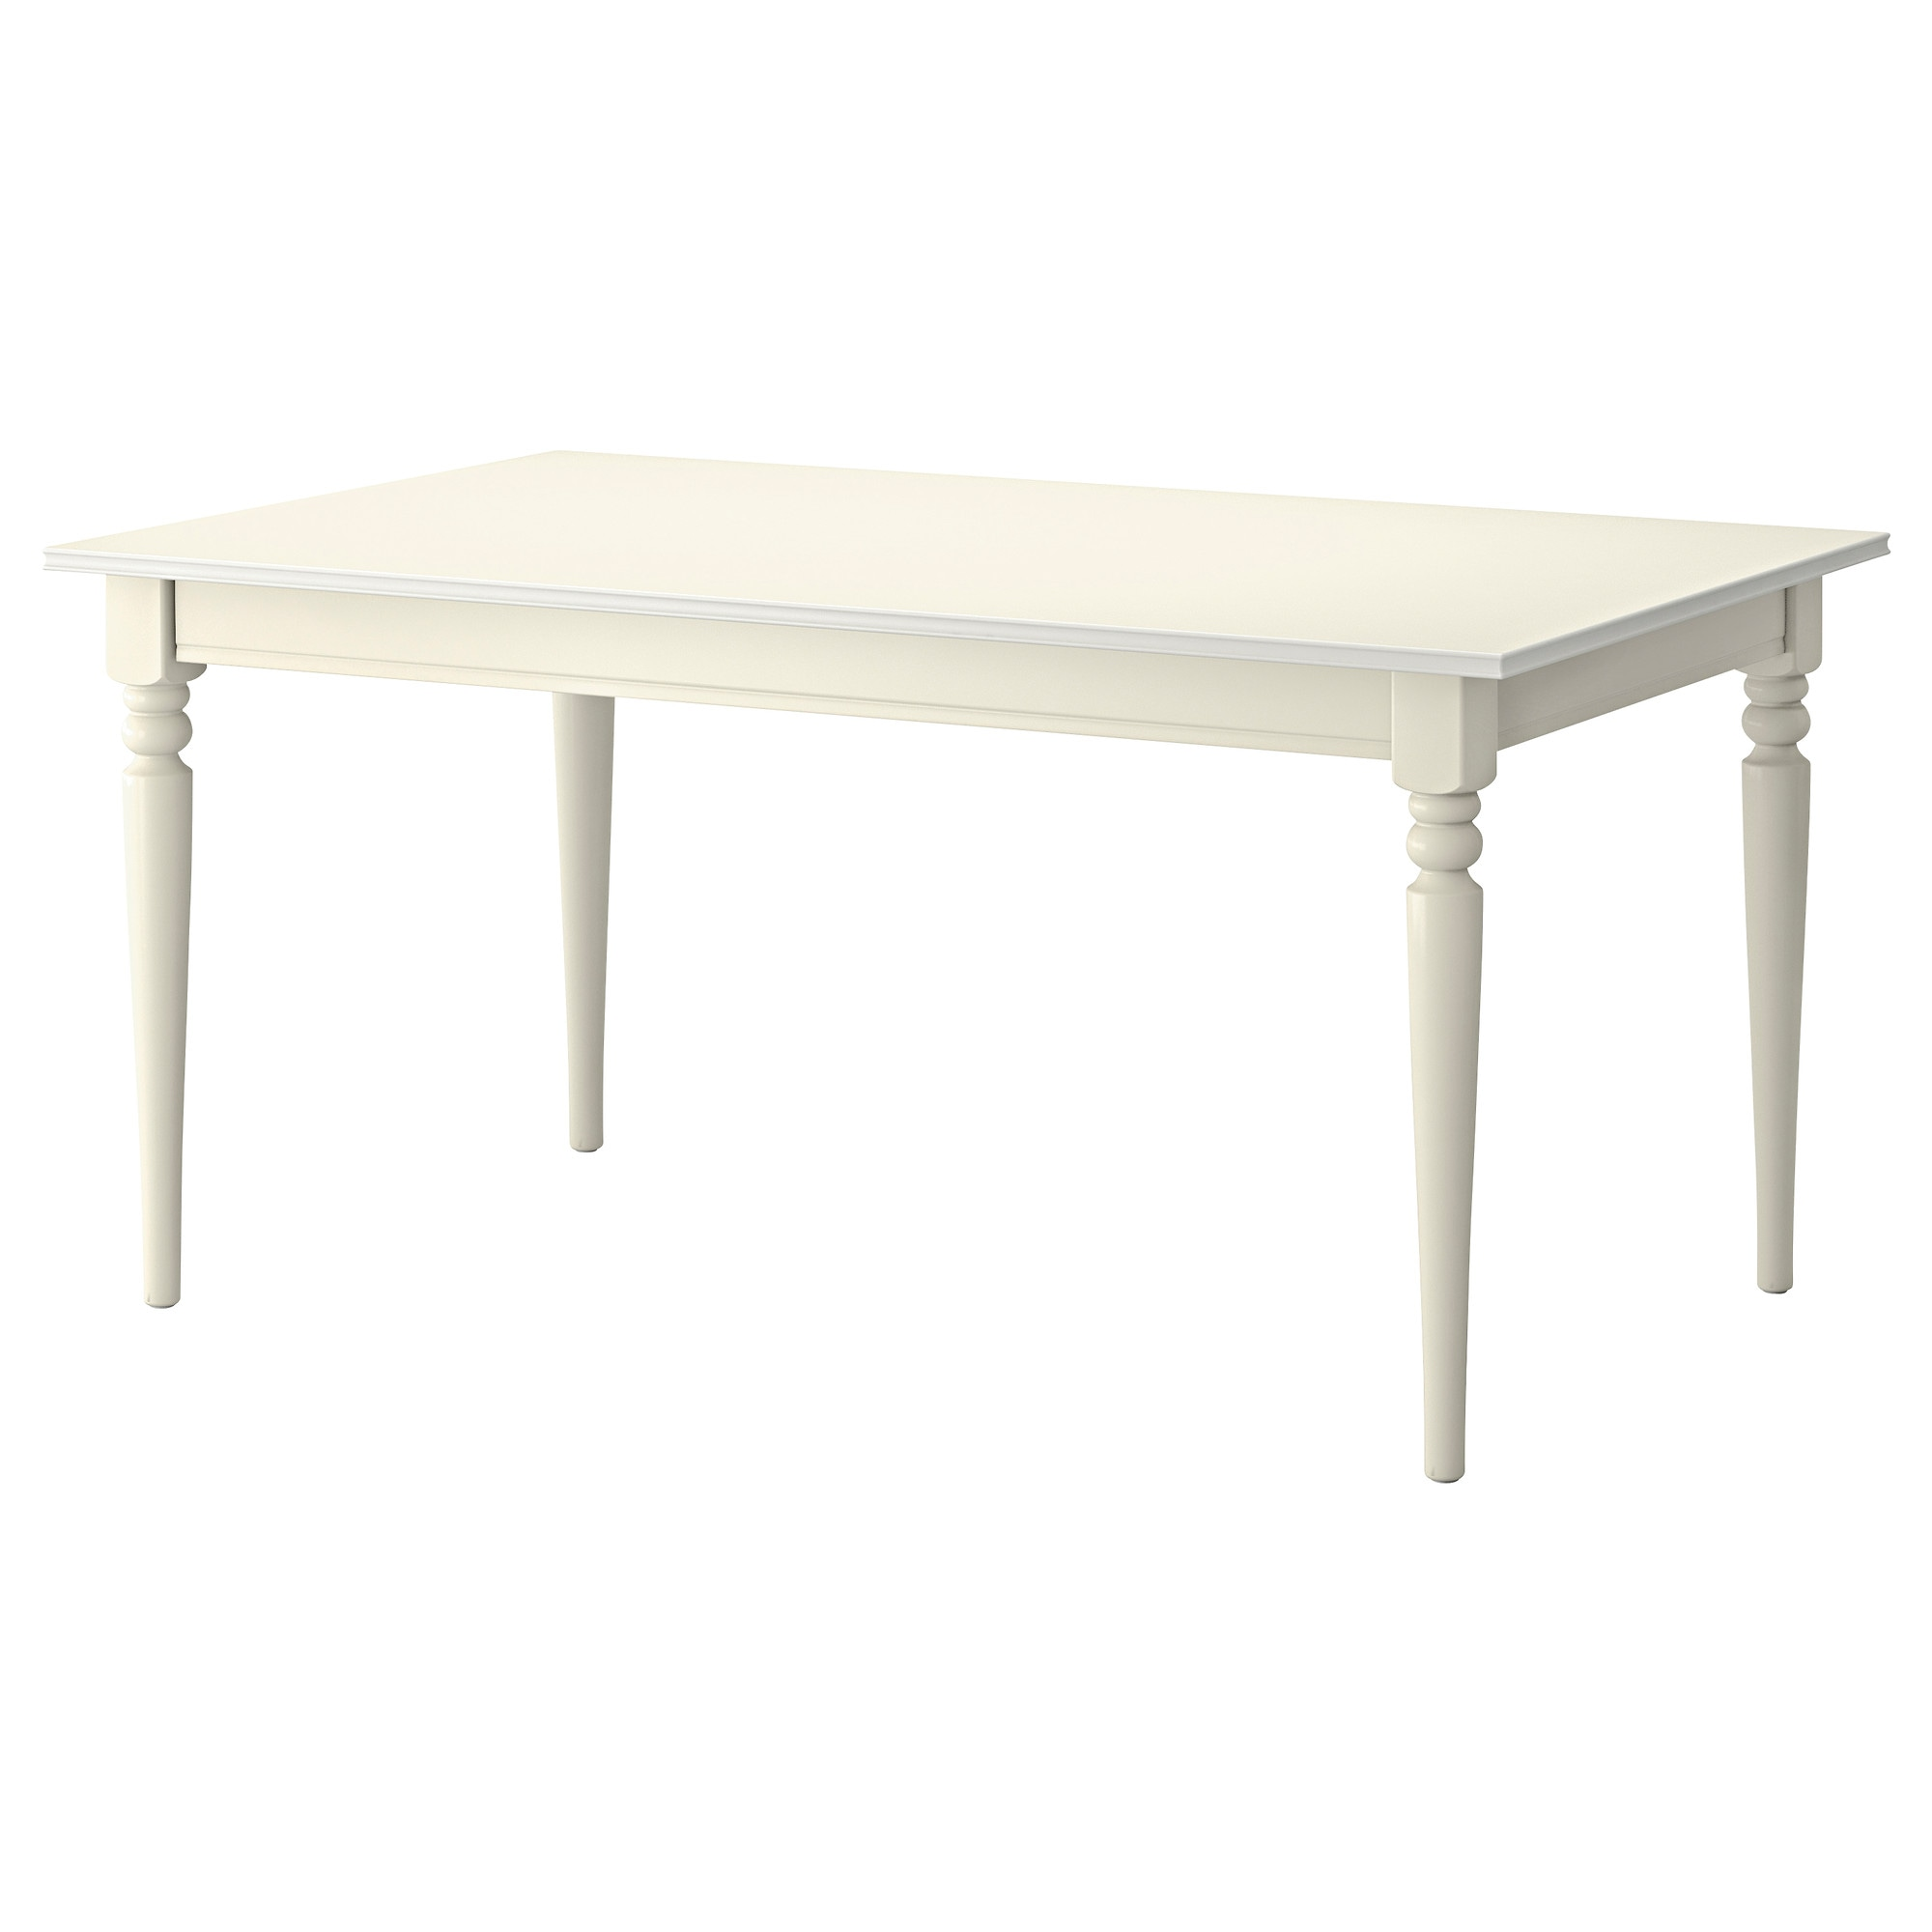 Ikea glass kitchen table - Ingatorp Extendable Table White Length 61 Max Length 84 5